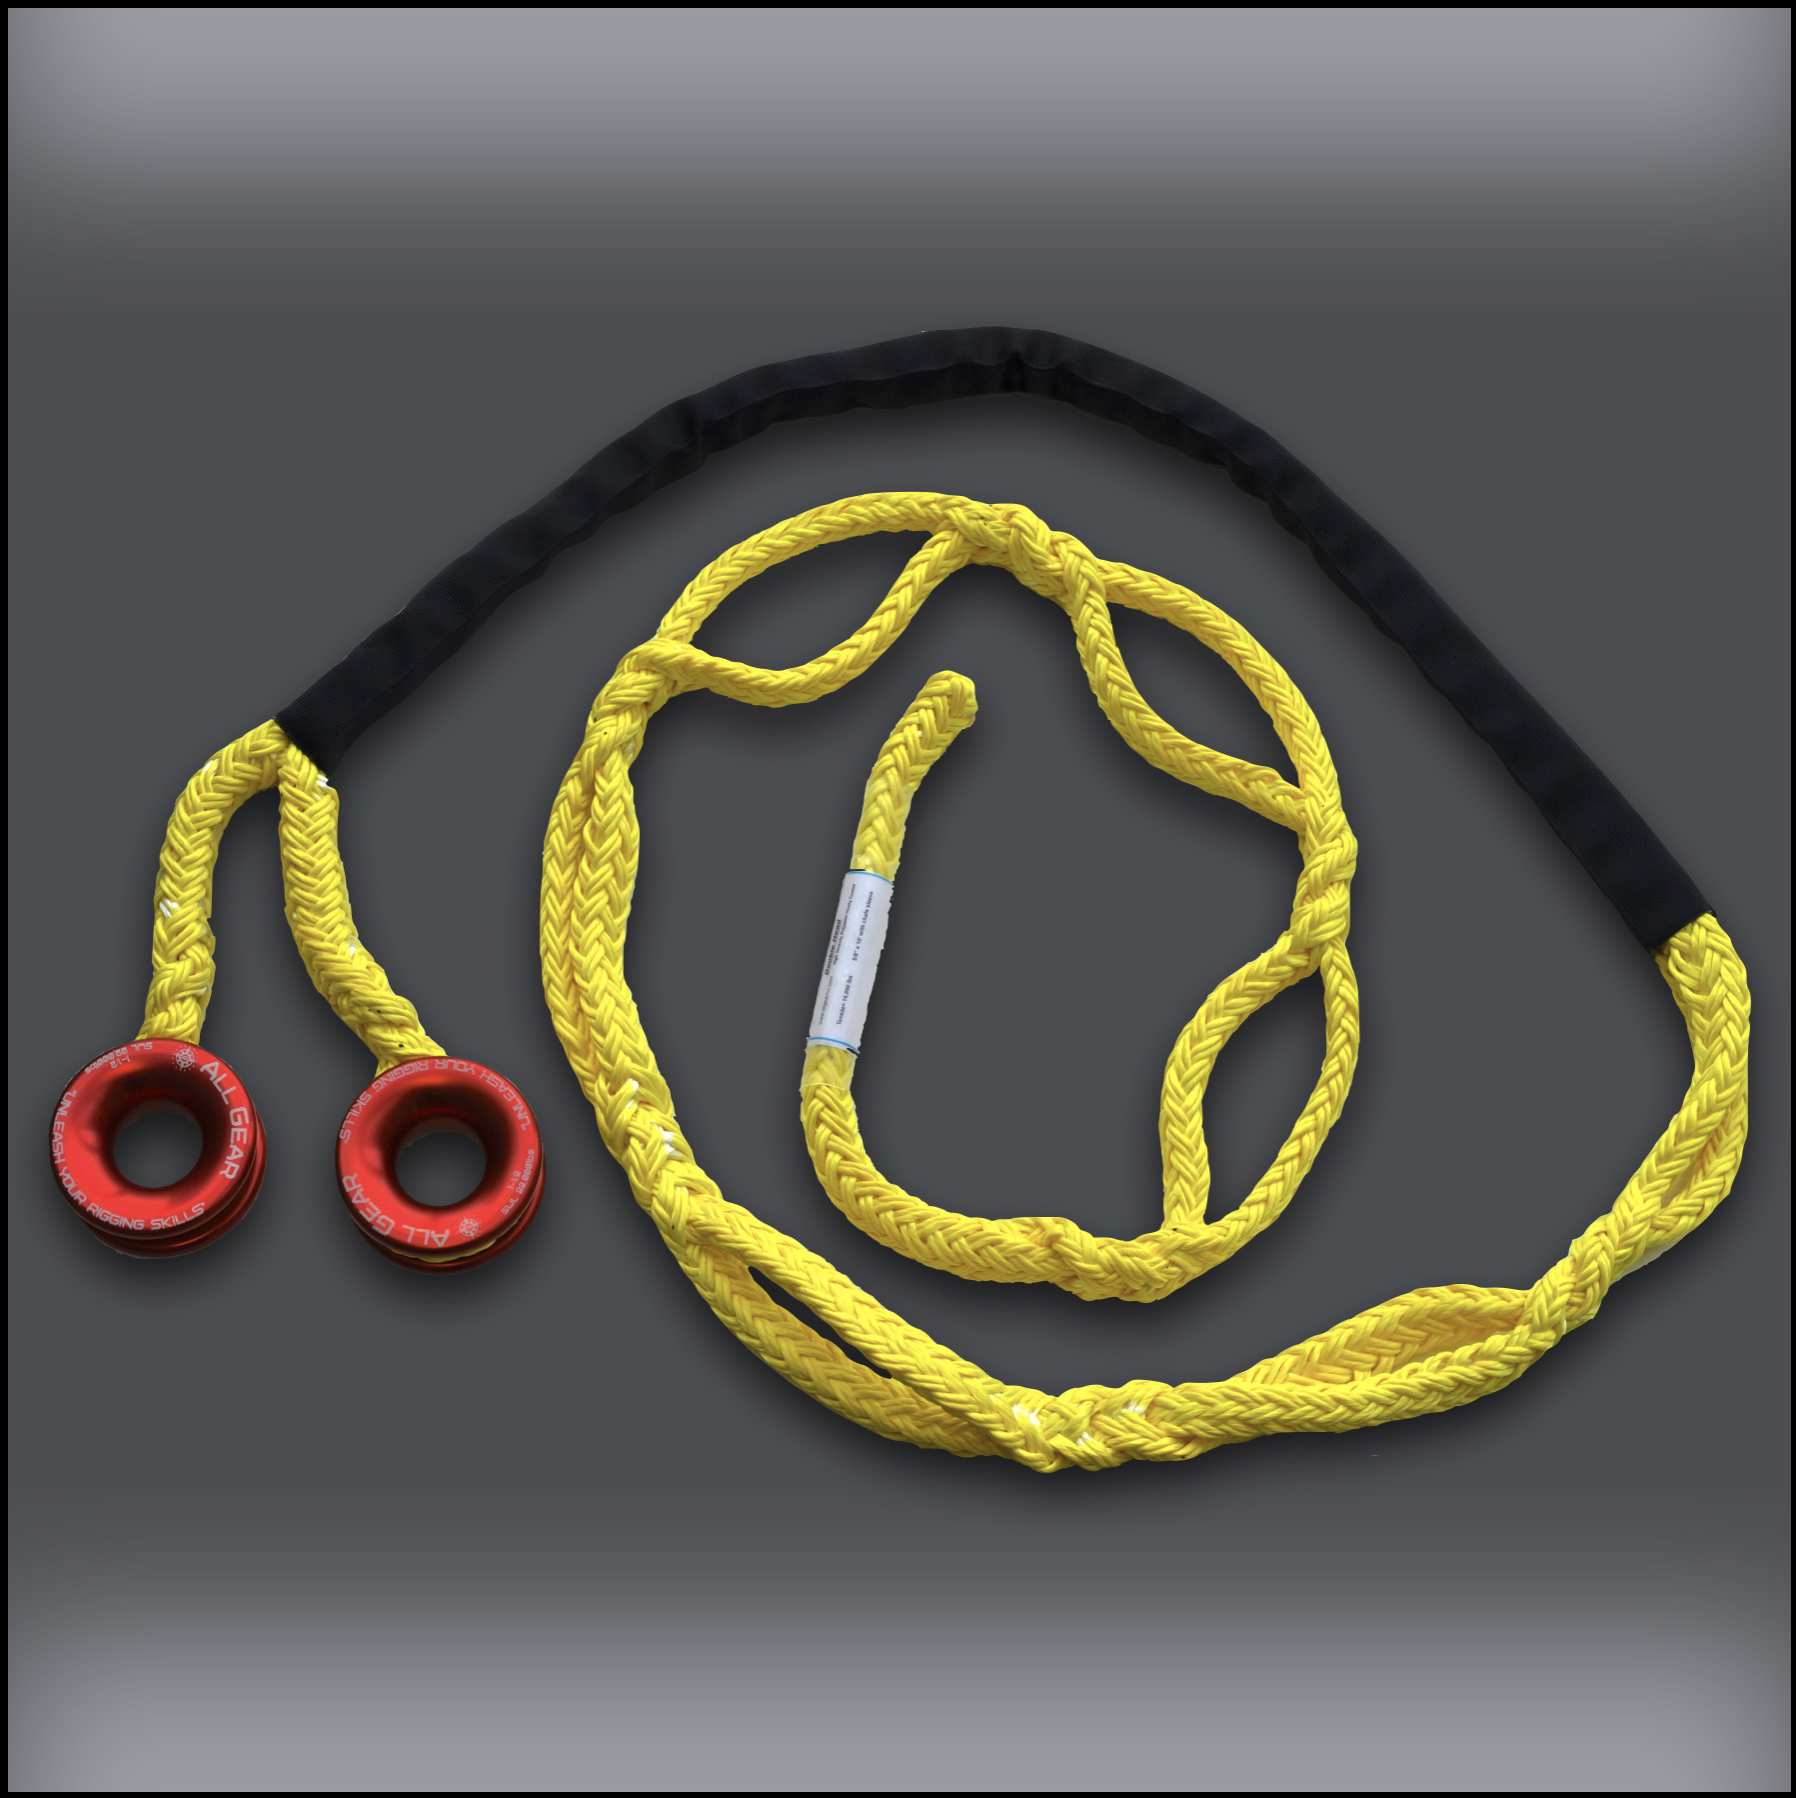 Double Headed Adjustable Soft Rig Sling – 5:8